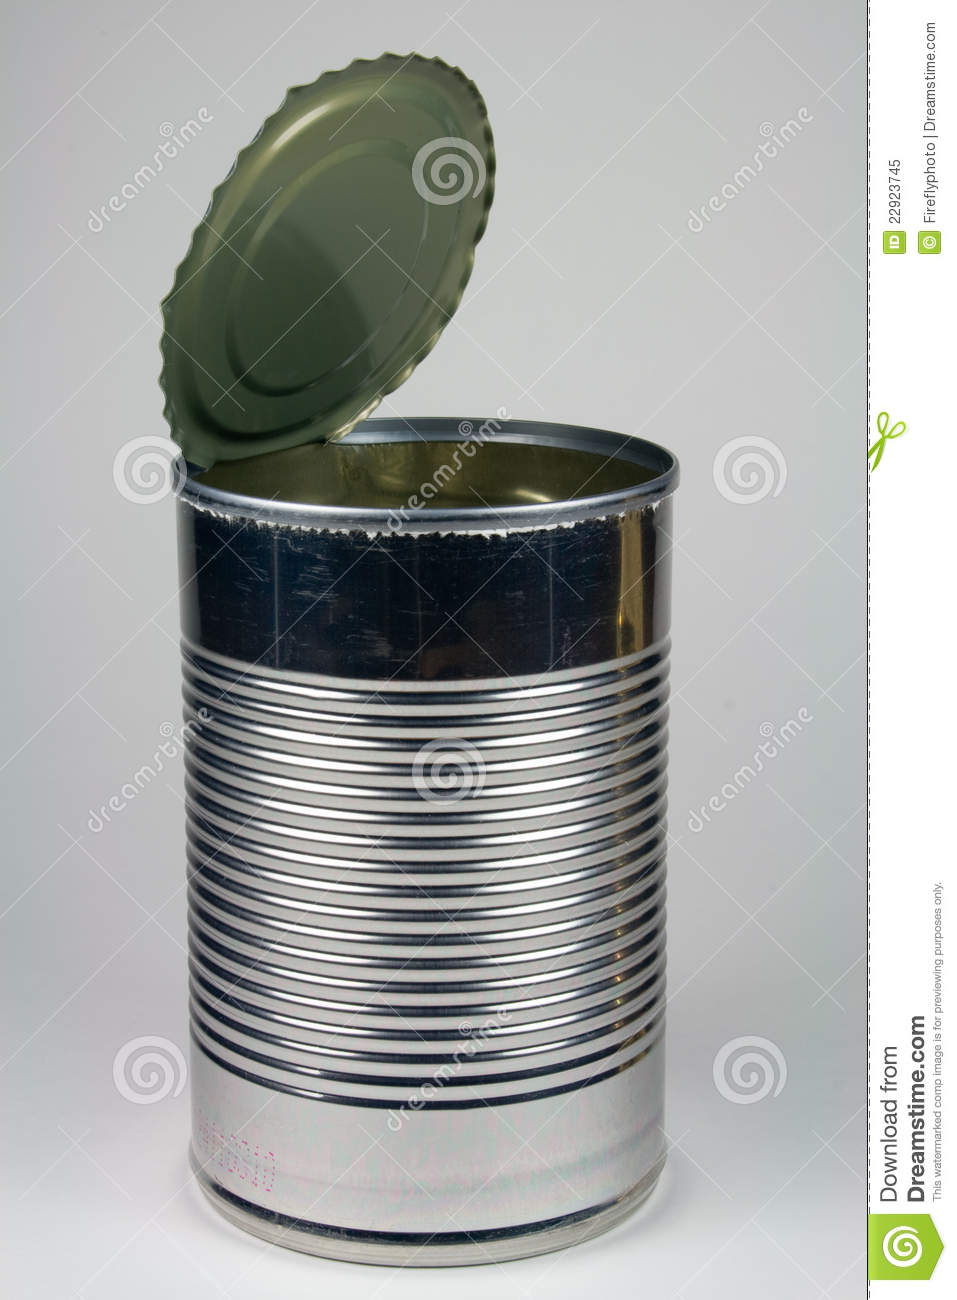 Empty Steel Soup Can - Opened Royalty Free Stock Photo